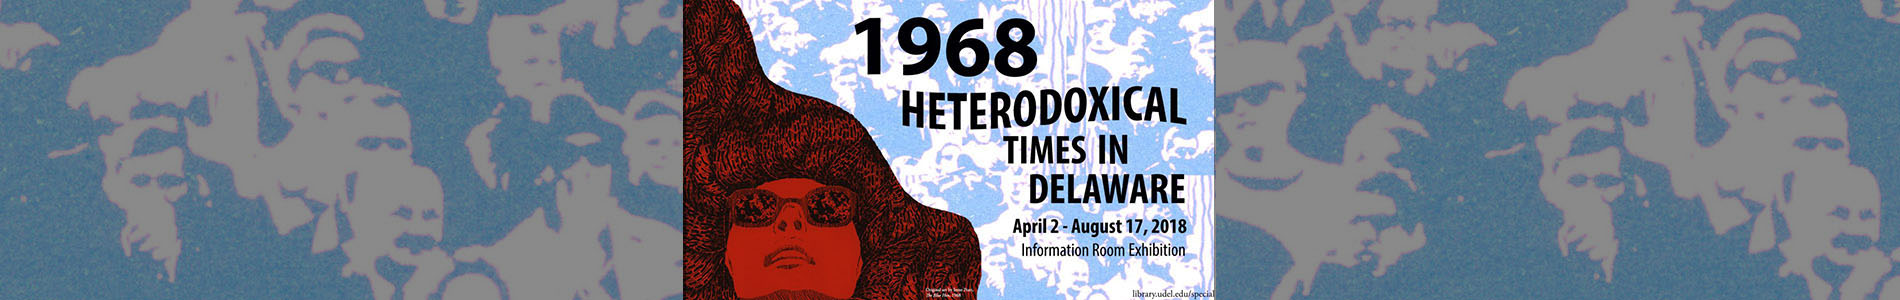 Banner Image for 1968: Heterodoxical Times in Delaware